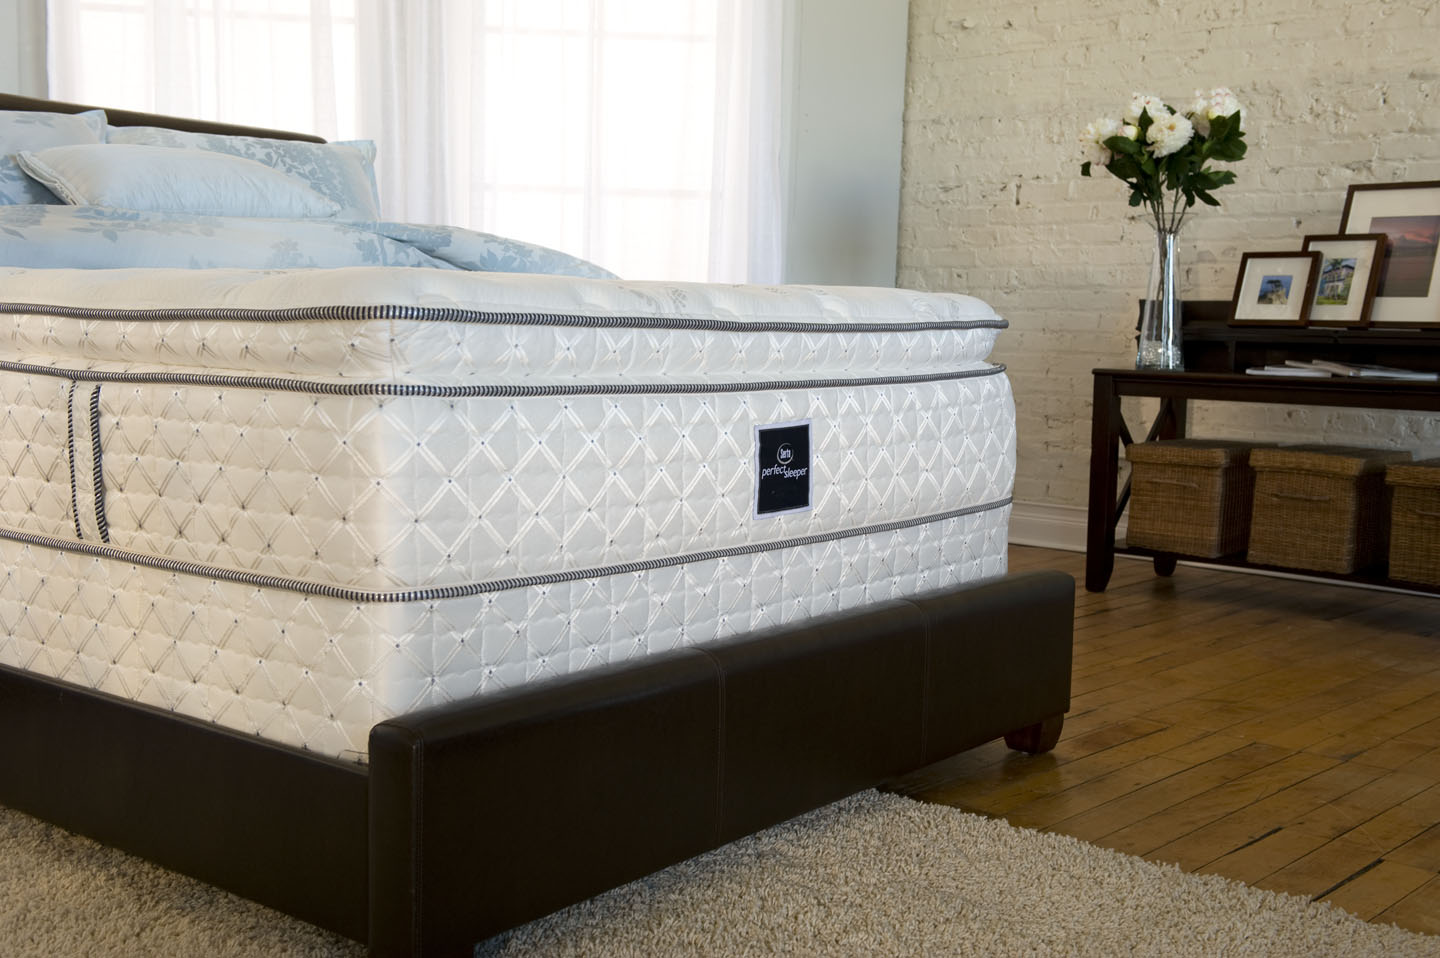 Comfortable Serta Perfect Sleeper Mattress On Espresso Leather Bed Plus Rug On Wooden Floor Matched With Brick Wall For Bedroom Decor Ideas